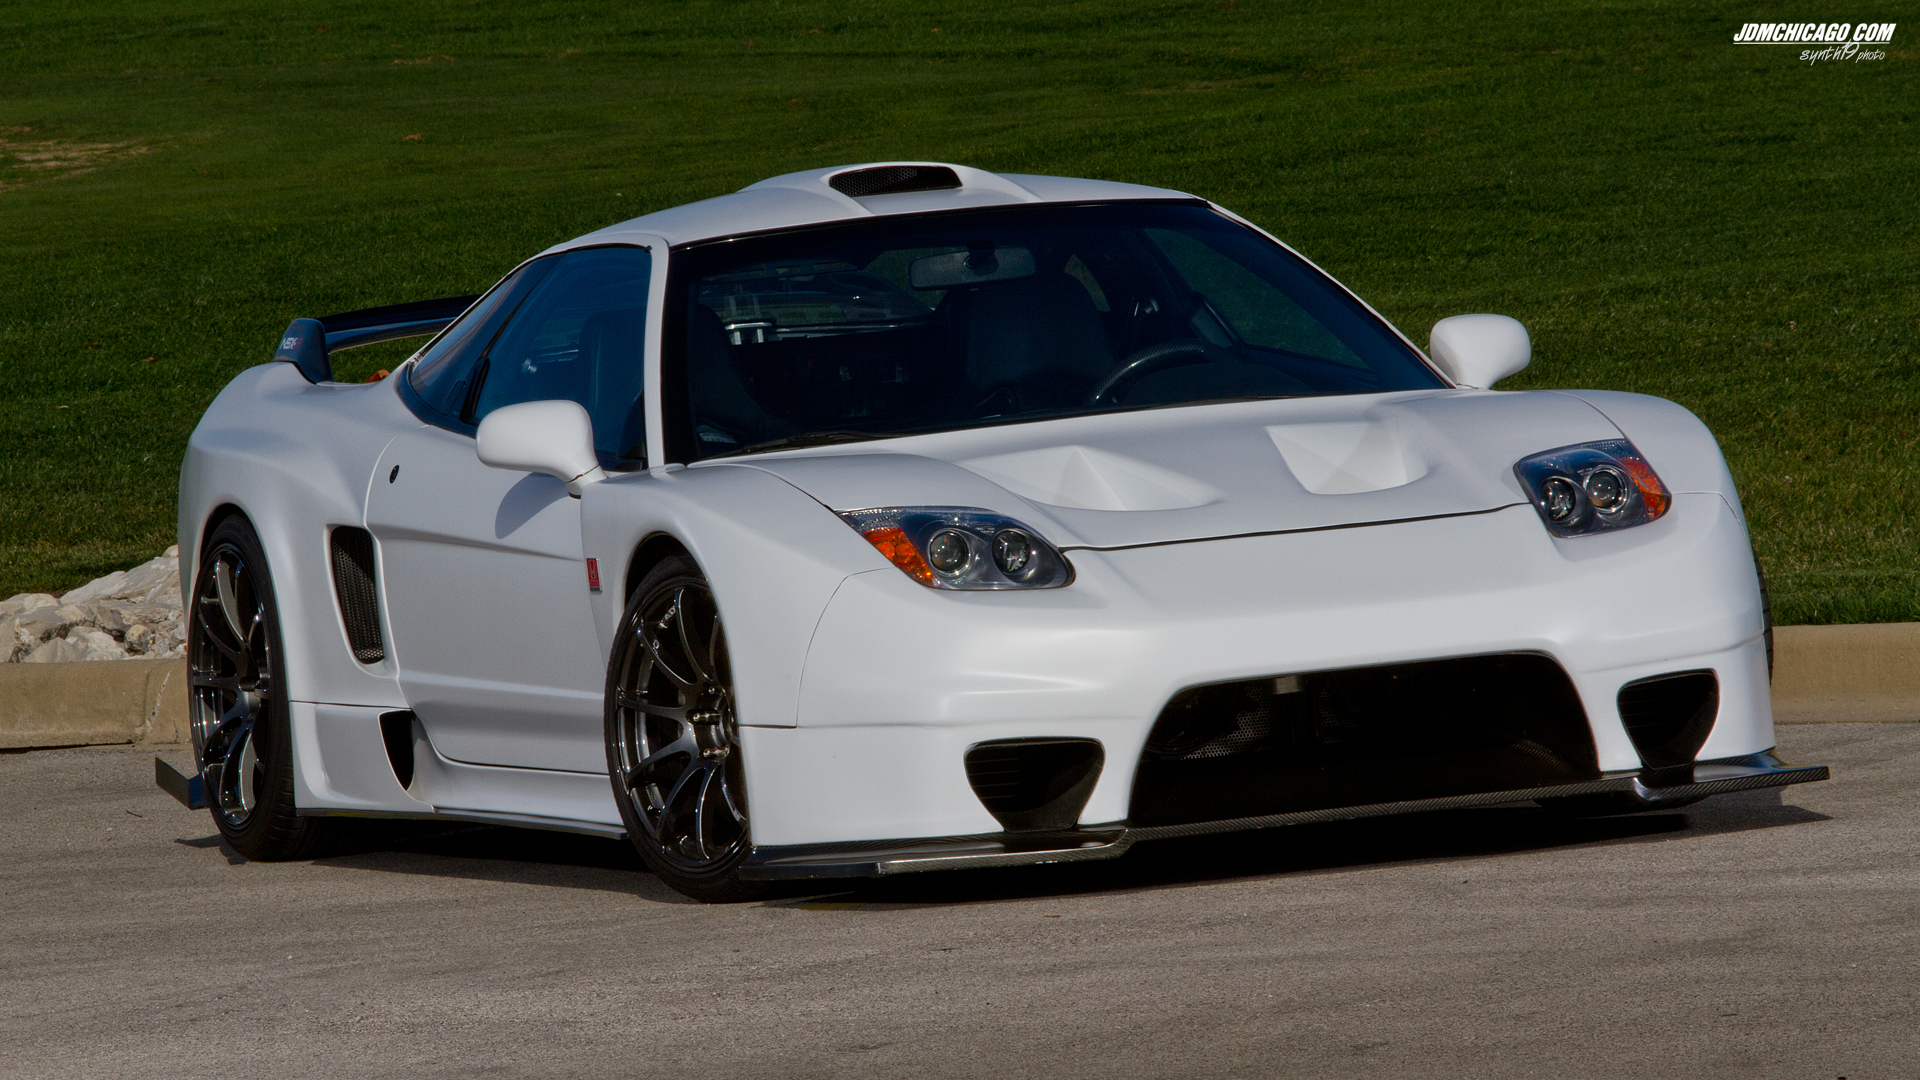 Project Widebody- Jeff's 1991 Acura NSX